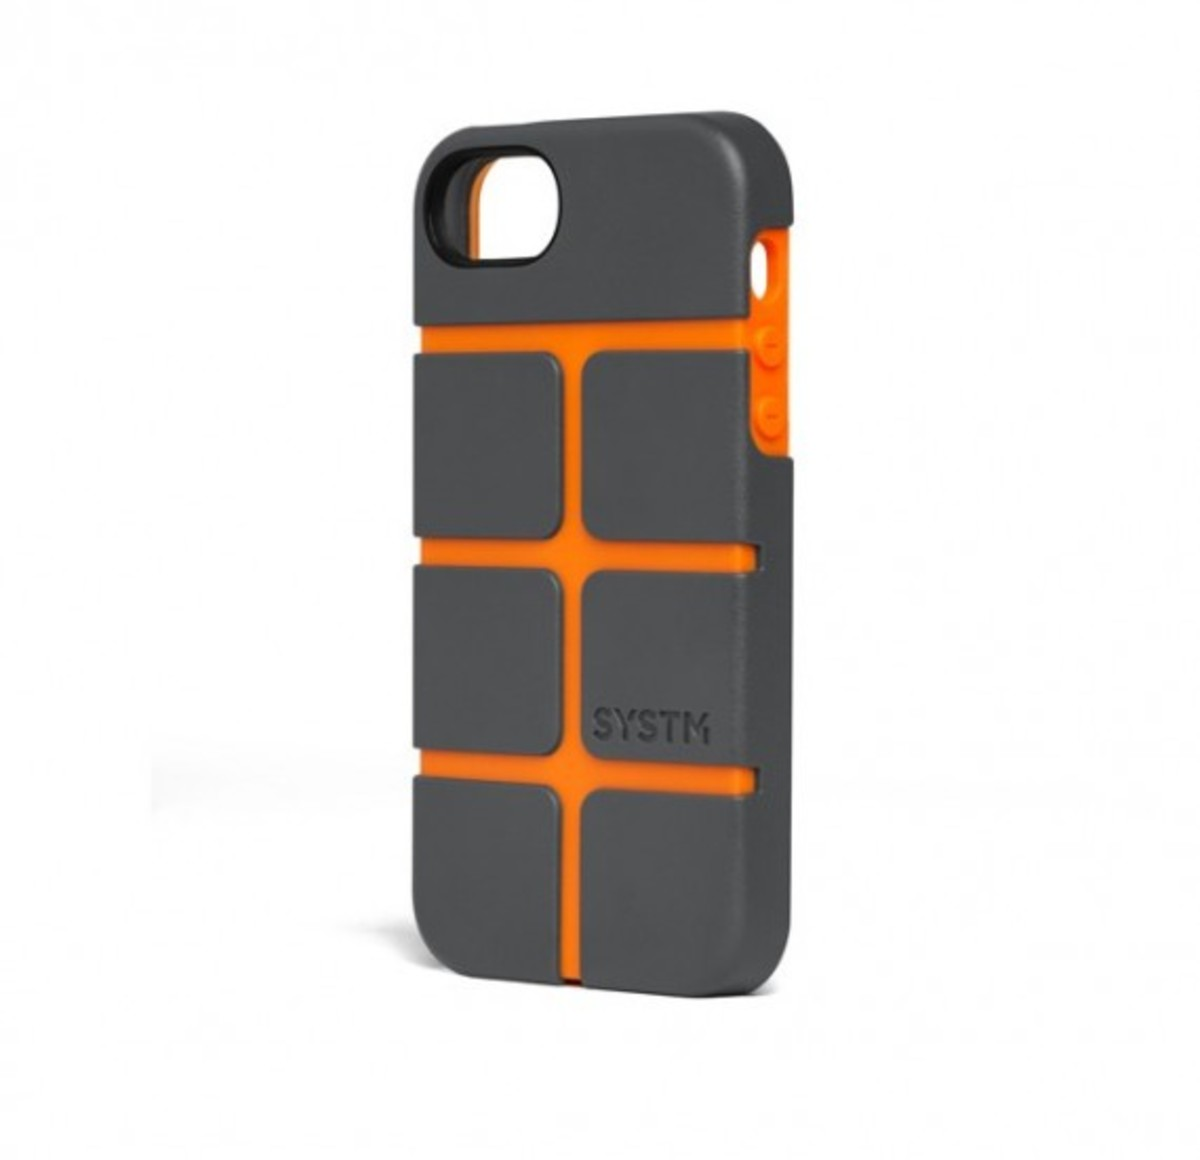 systm-iphone-5-cases-05